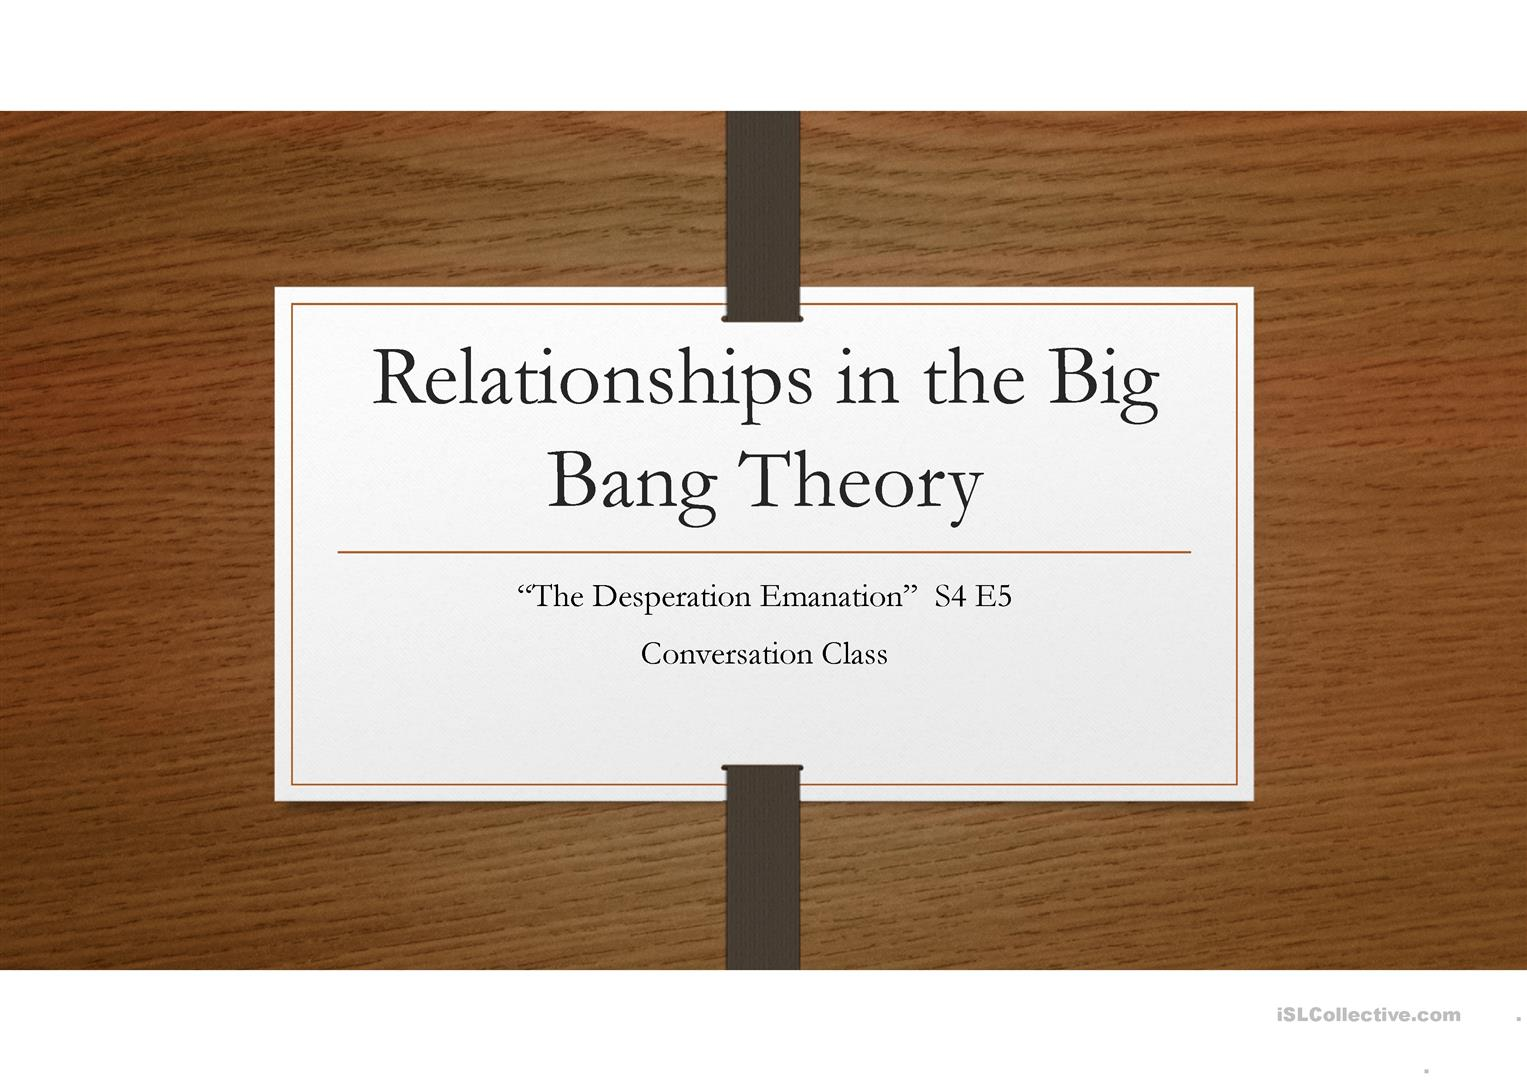 conversation class relationships in the big bang theory worksheet free esl projectable. Black Bedroom Furniture Sets. Home Design Ideas